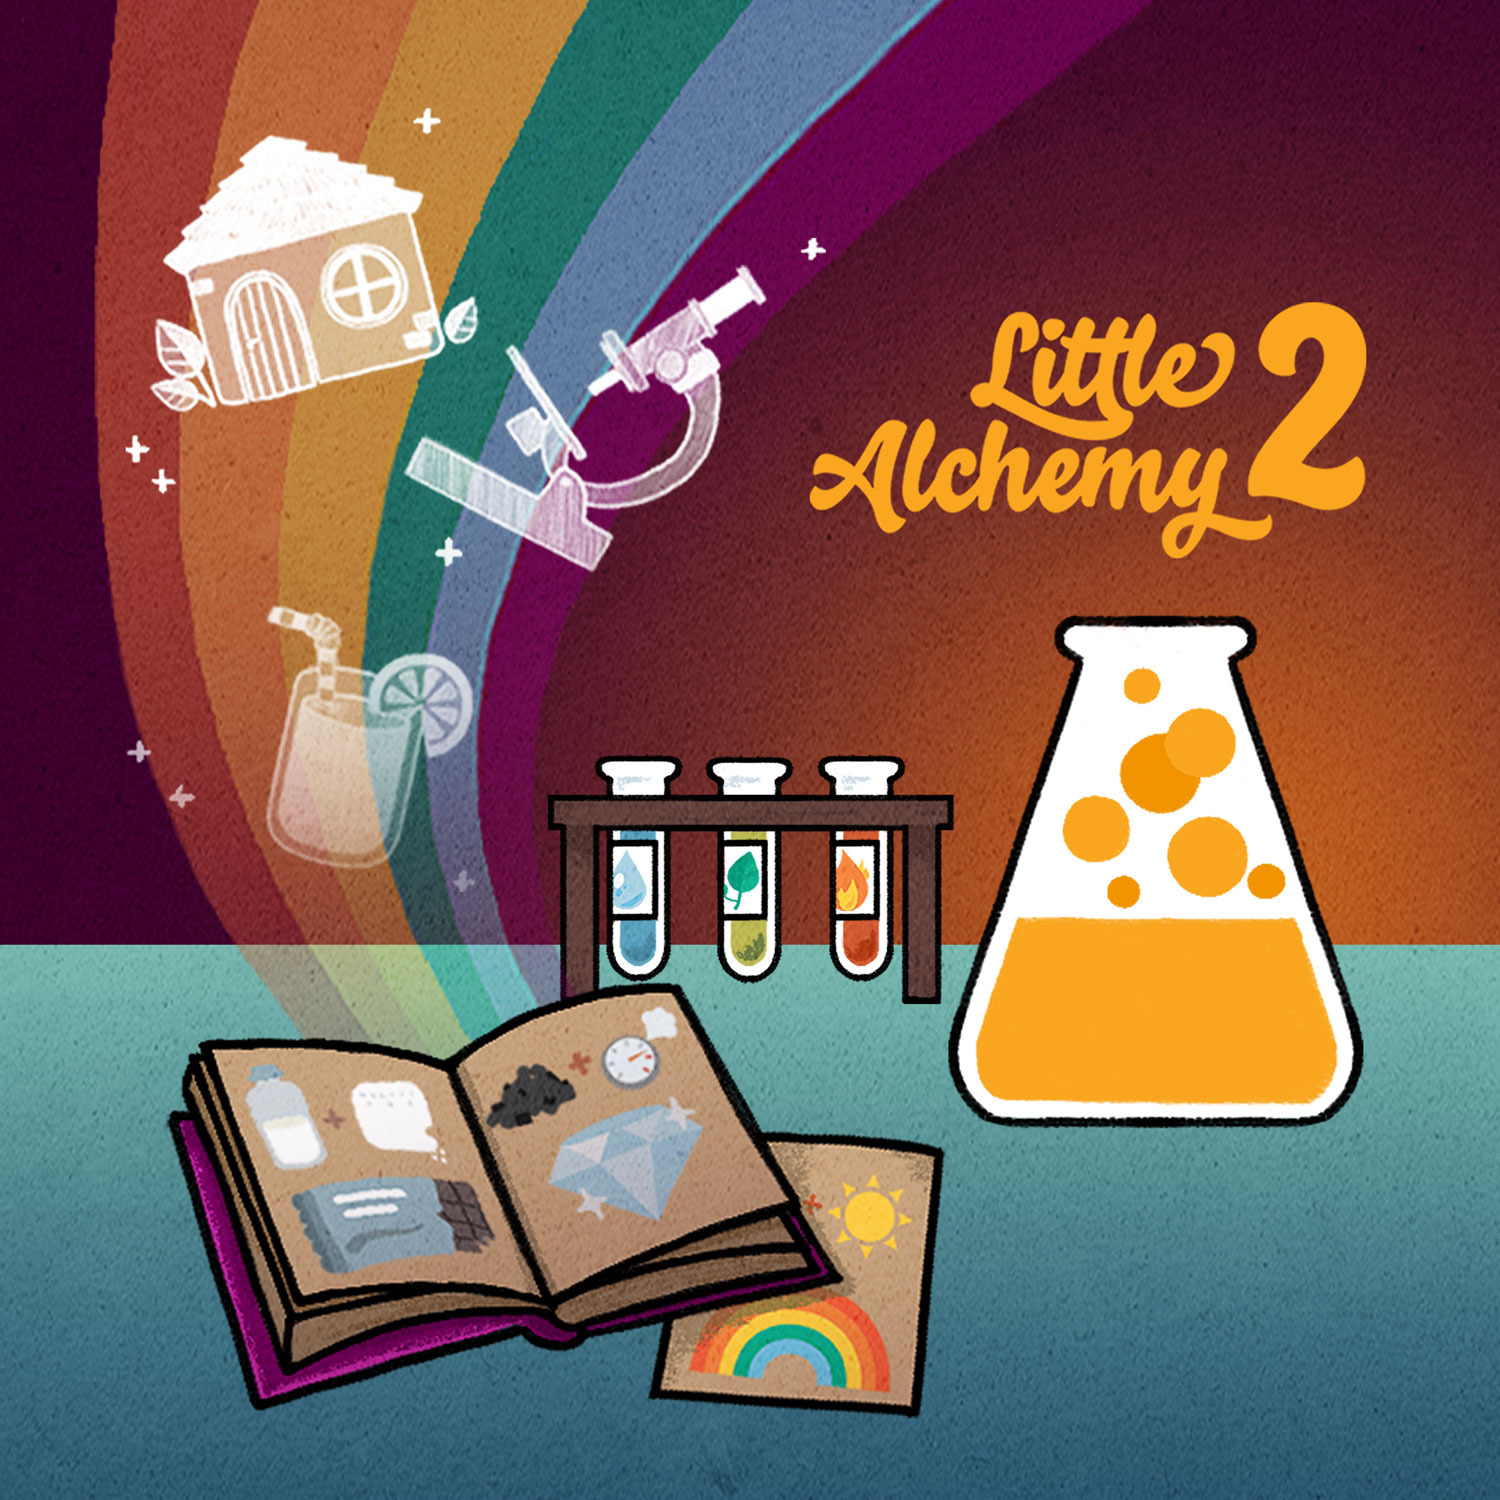 Little Alchemy 2